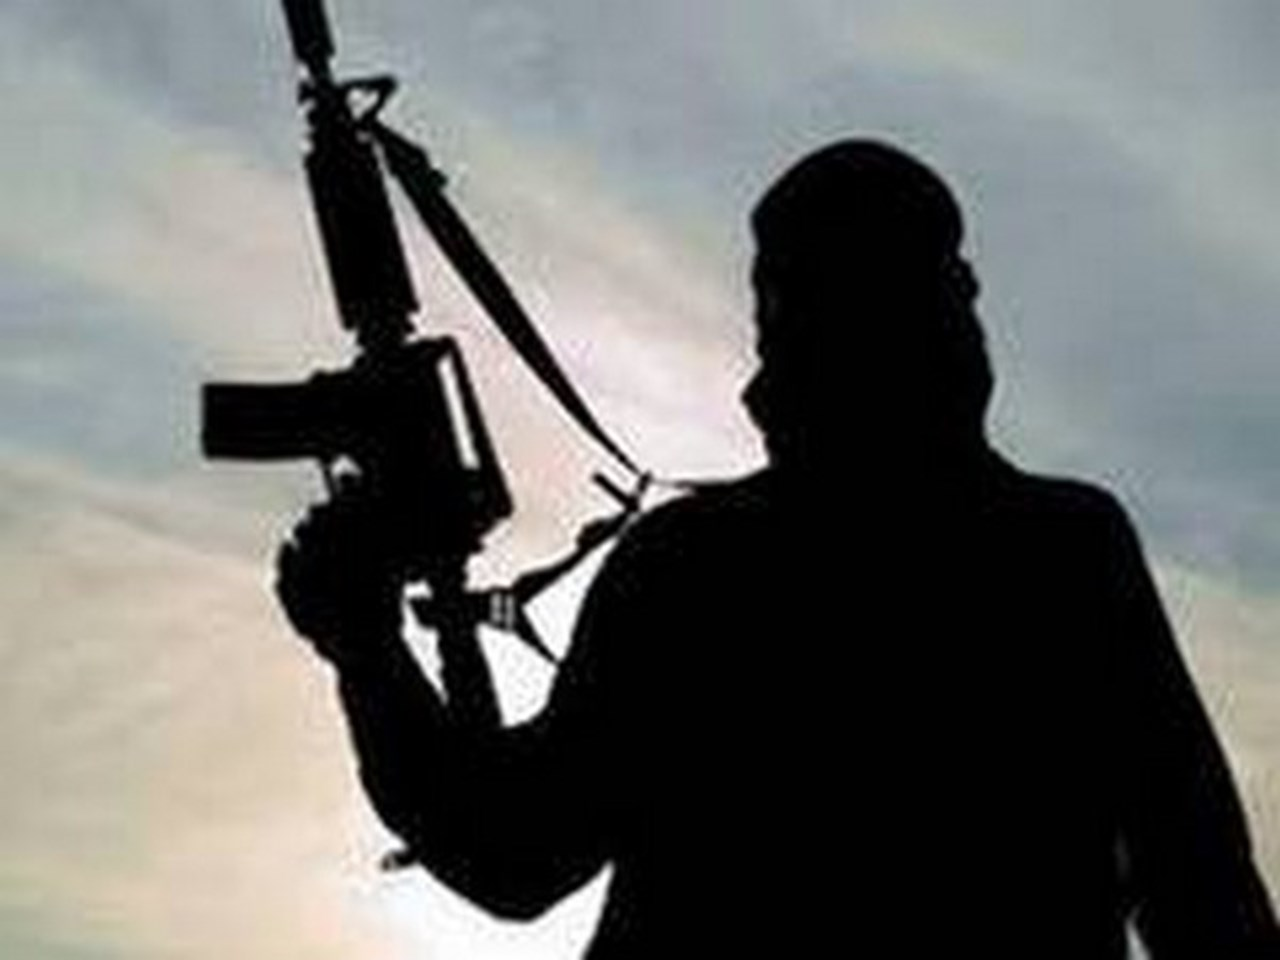 Taliban seen capturing US weapons, currency in social media videos